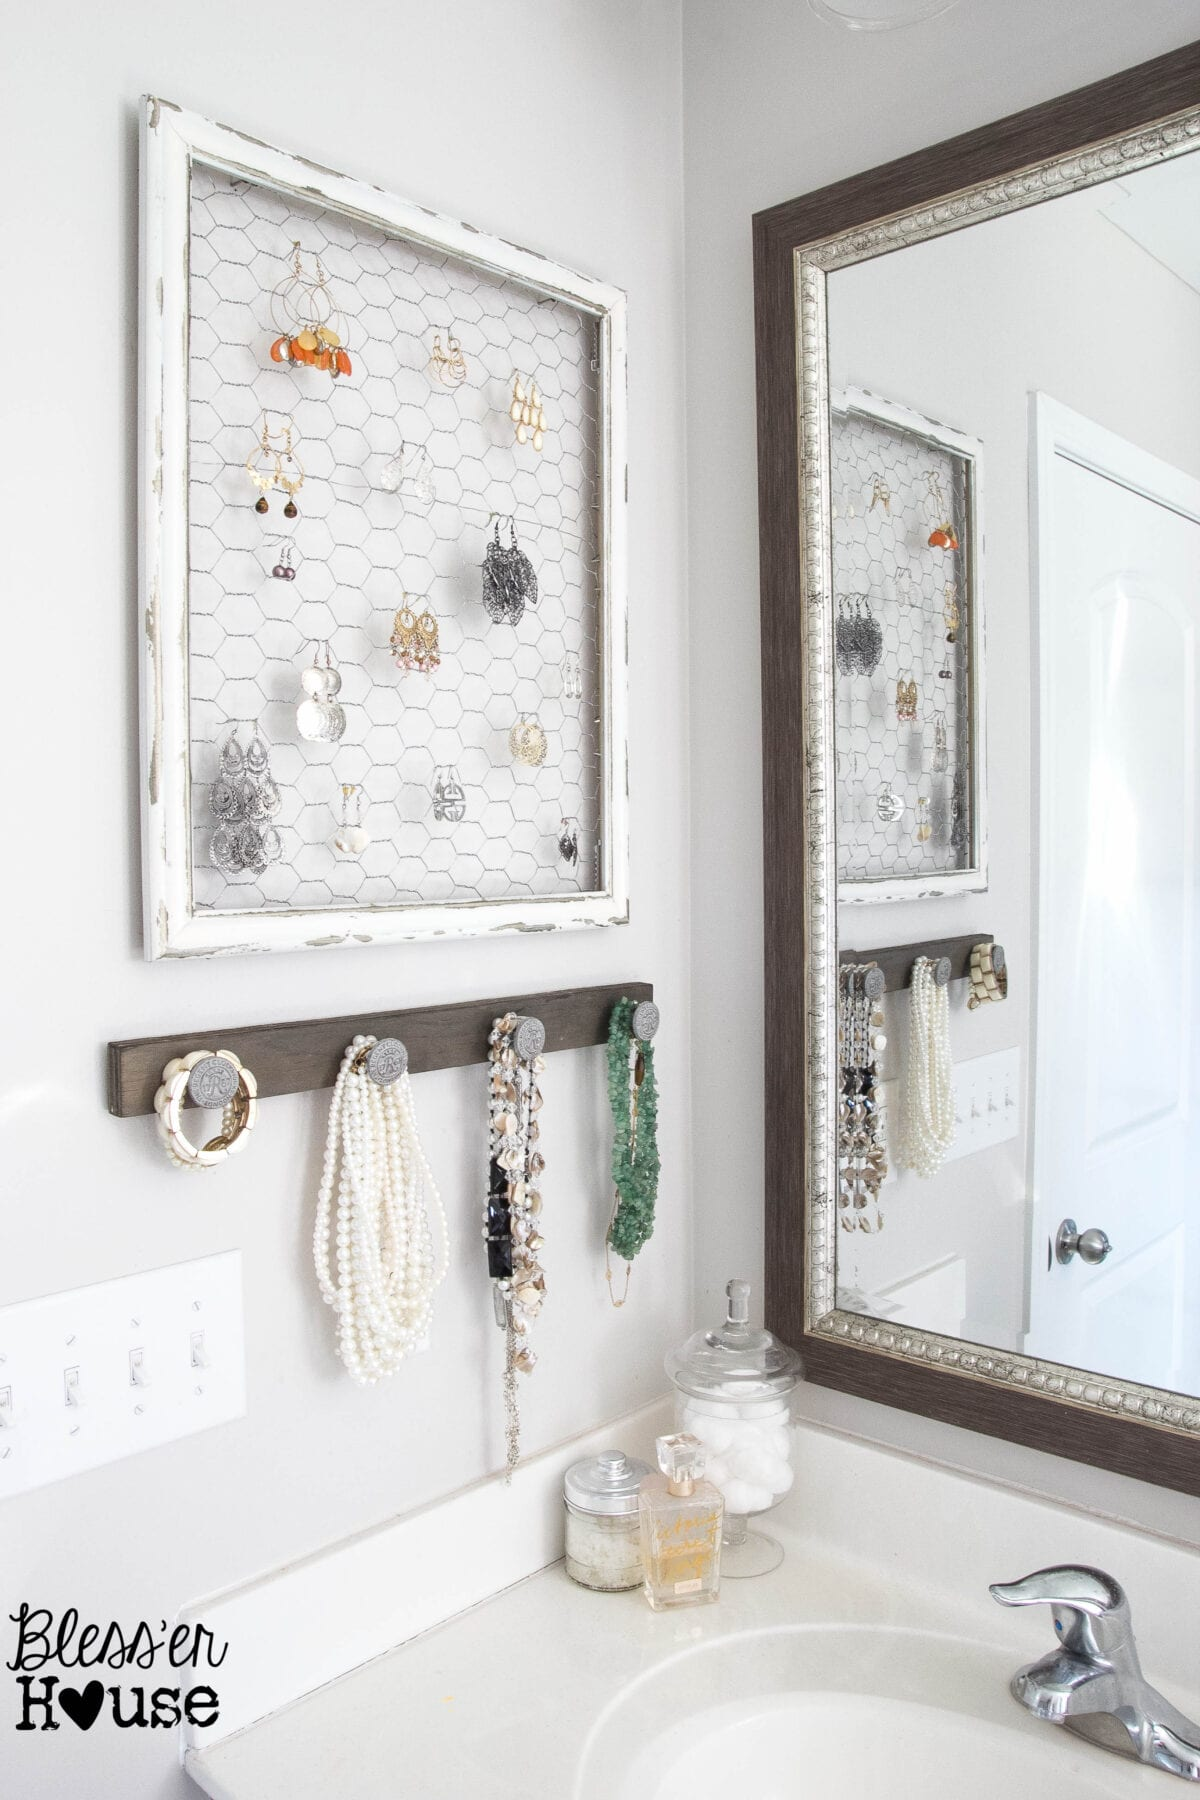 DIY Rustic Industrial Jewelry Organizer - Bless\'er House